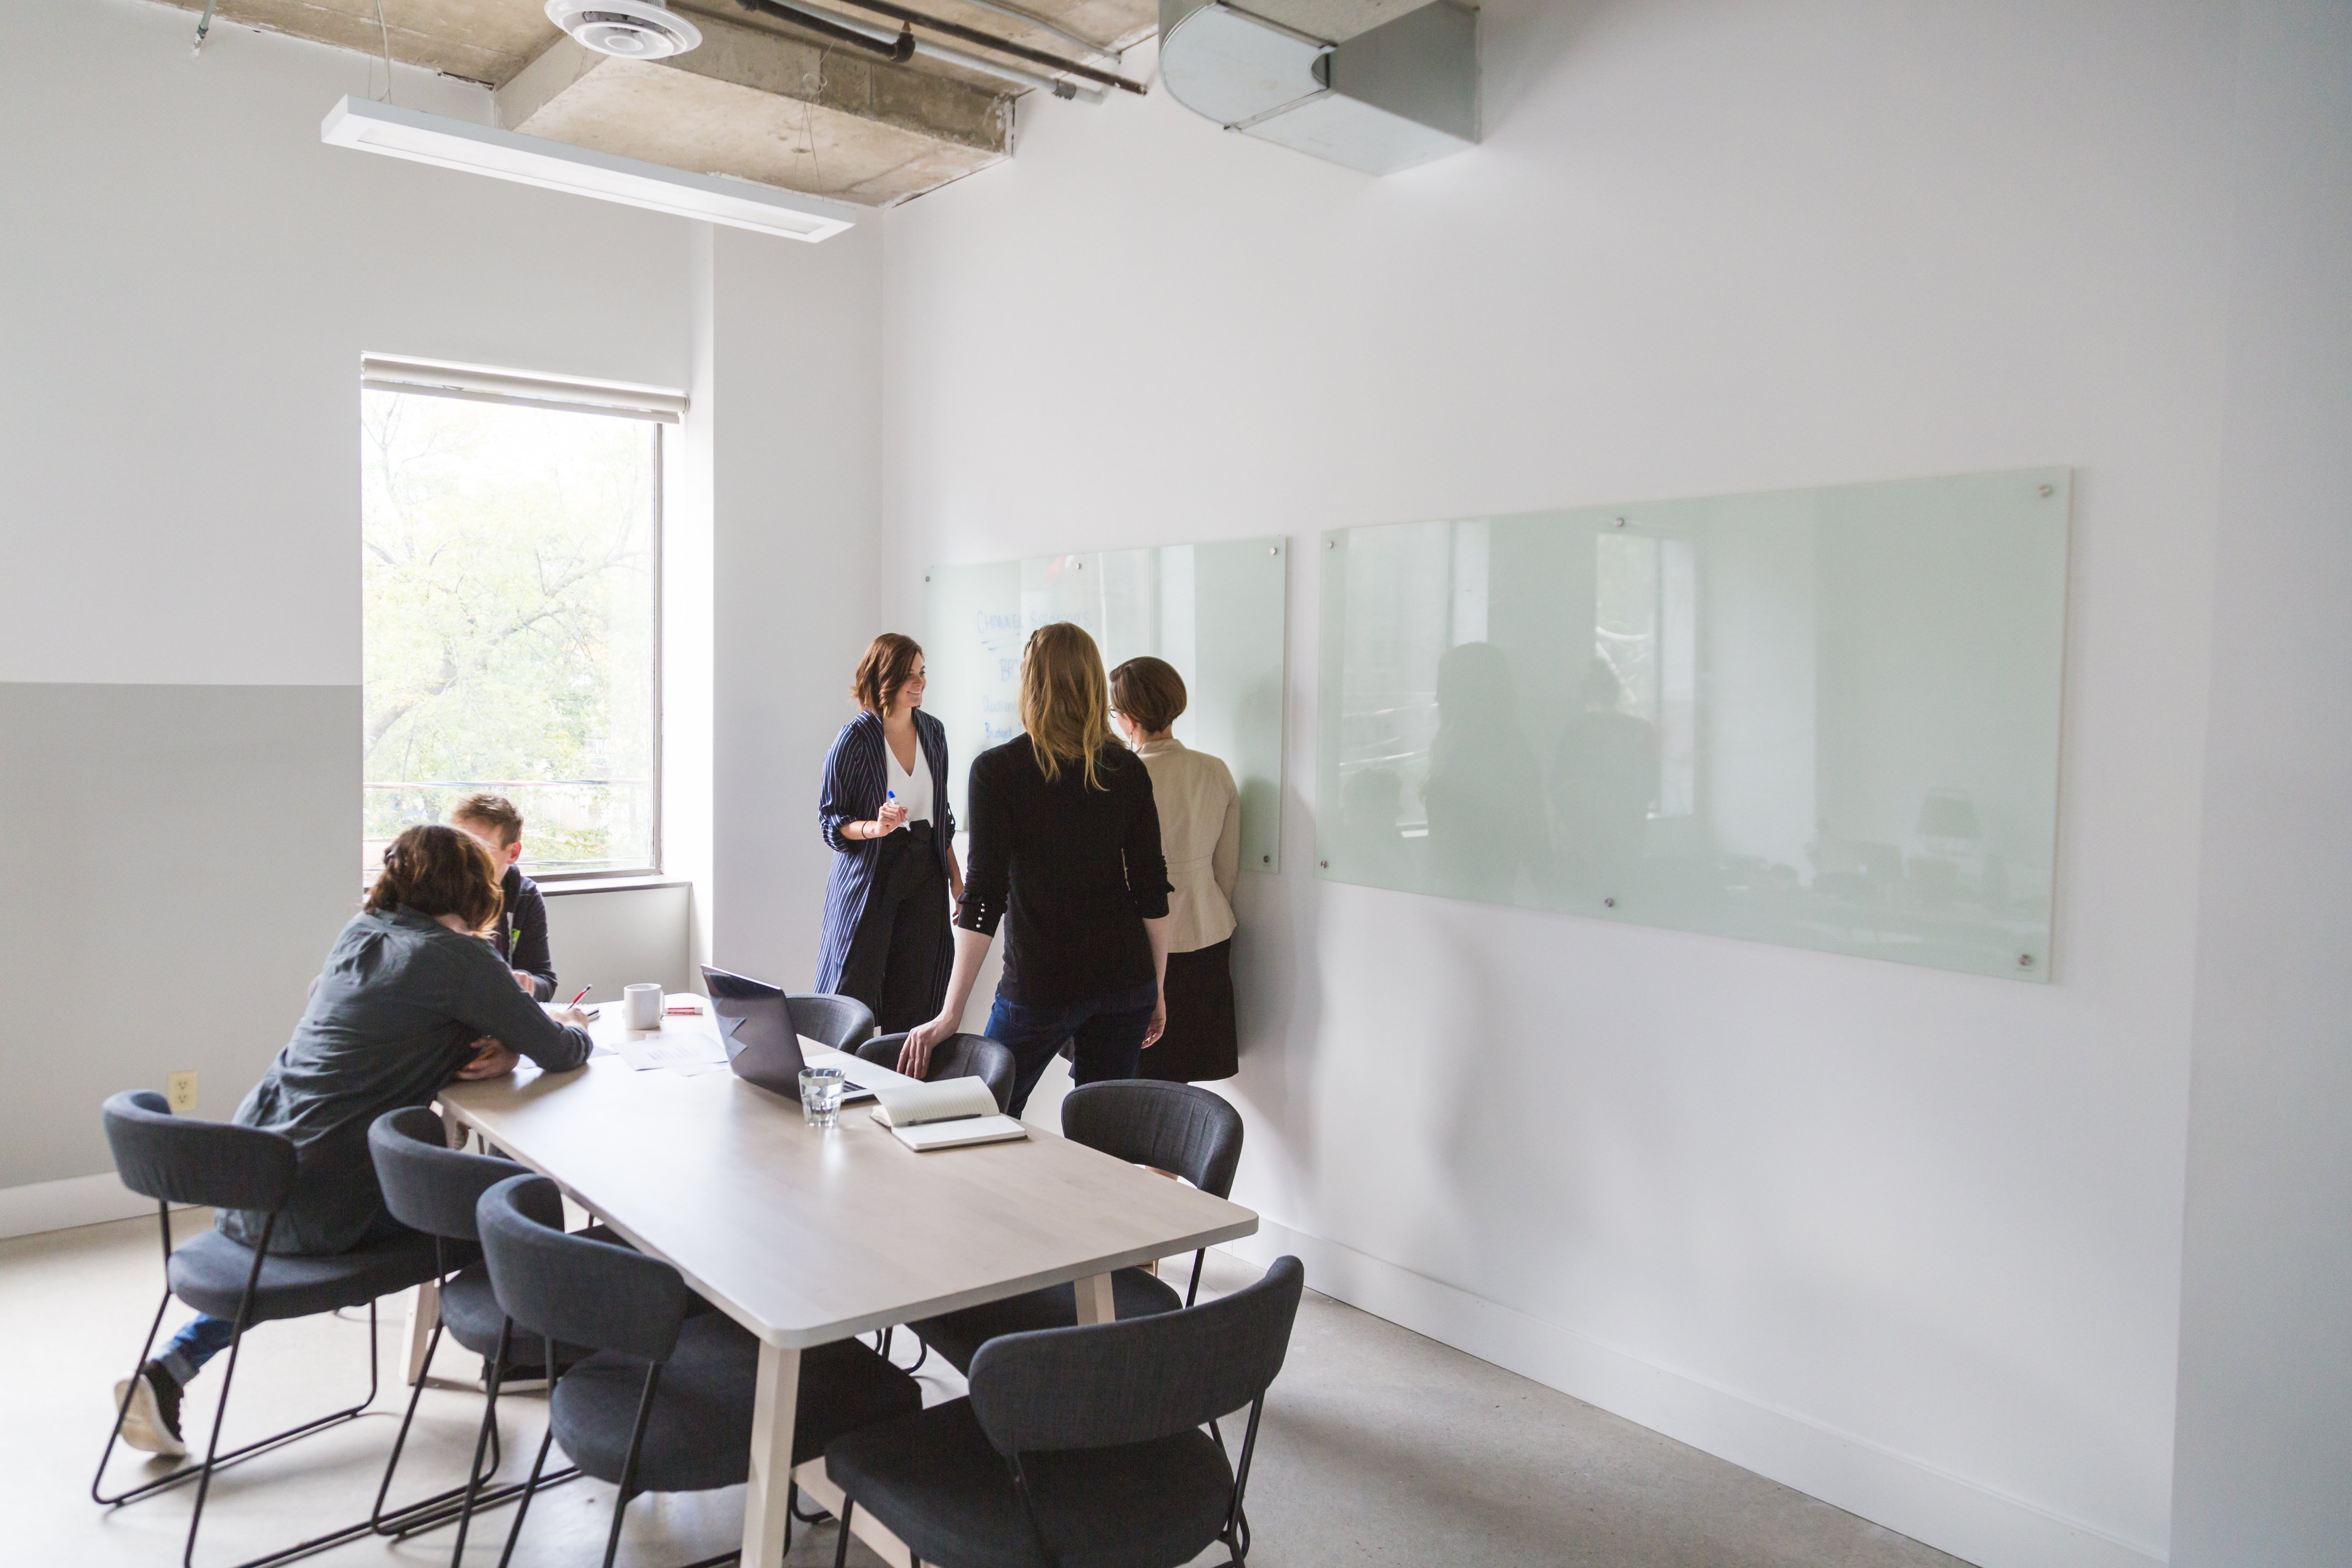 Wondering why idea generation is so hard? There are creative ideation techniques you can implement to help boost your brainstorming.